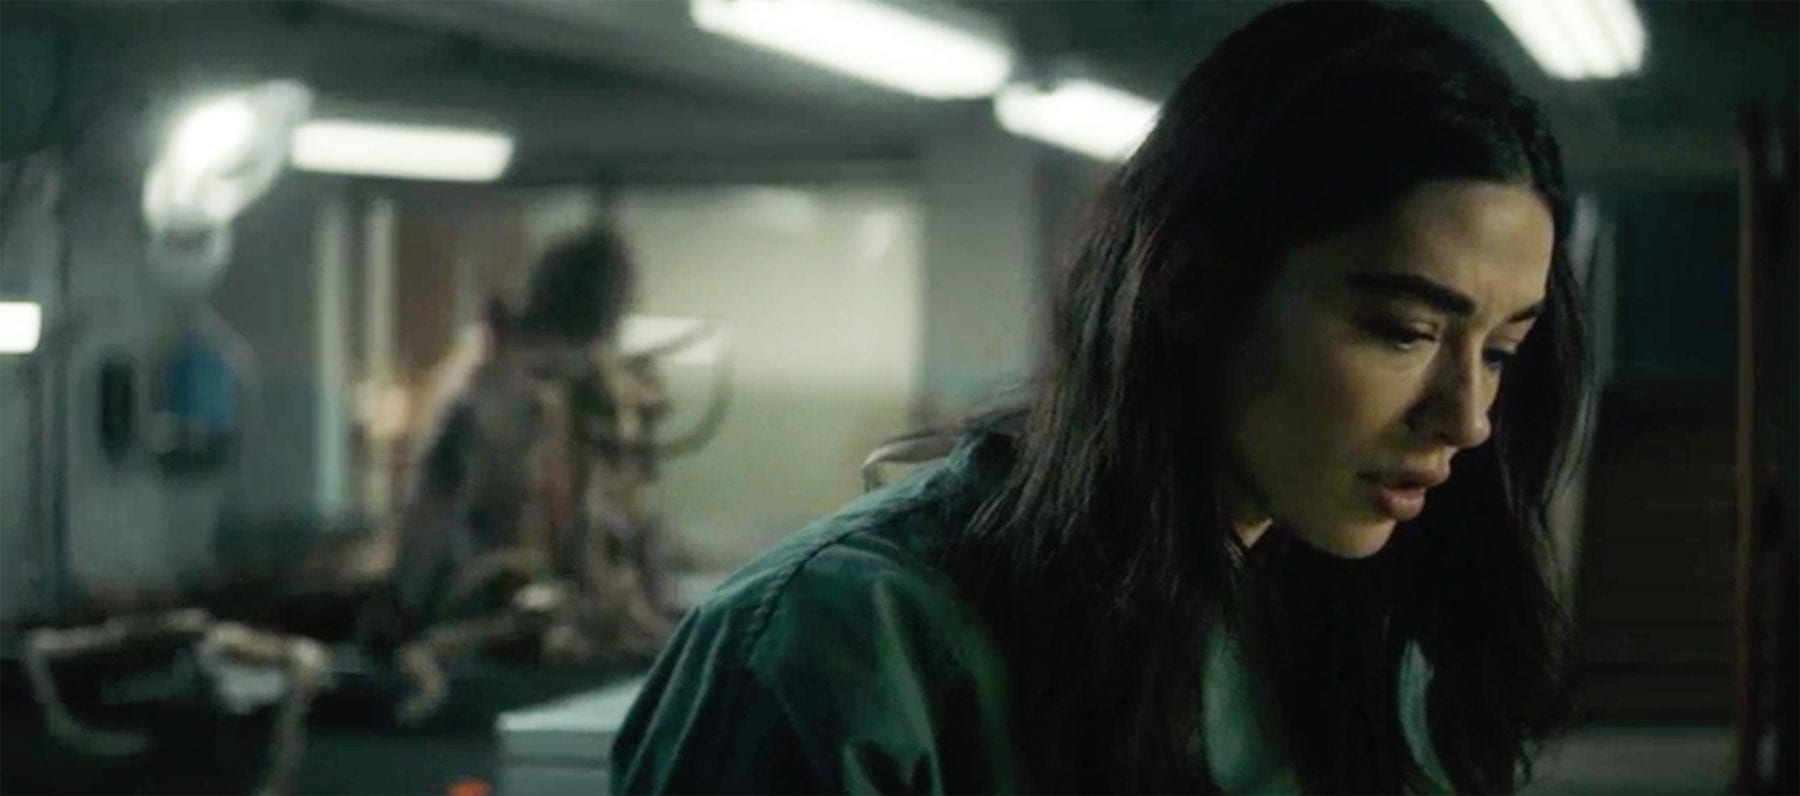 Dr. Abby Arcane (Crystal Reed) should probably turn around; her autopsy subject seems to having some difficulties.